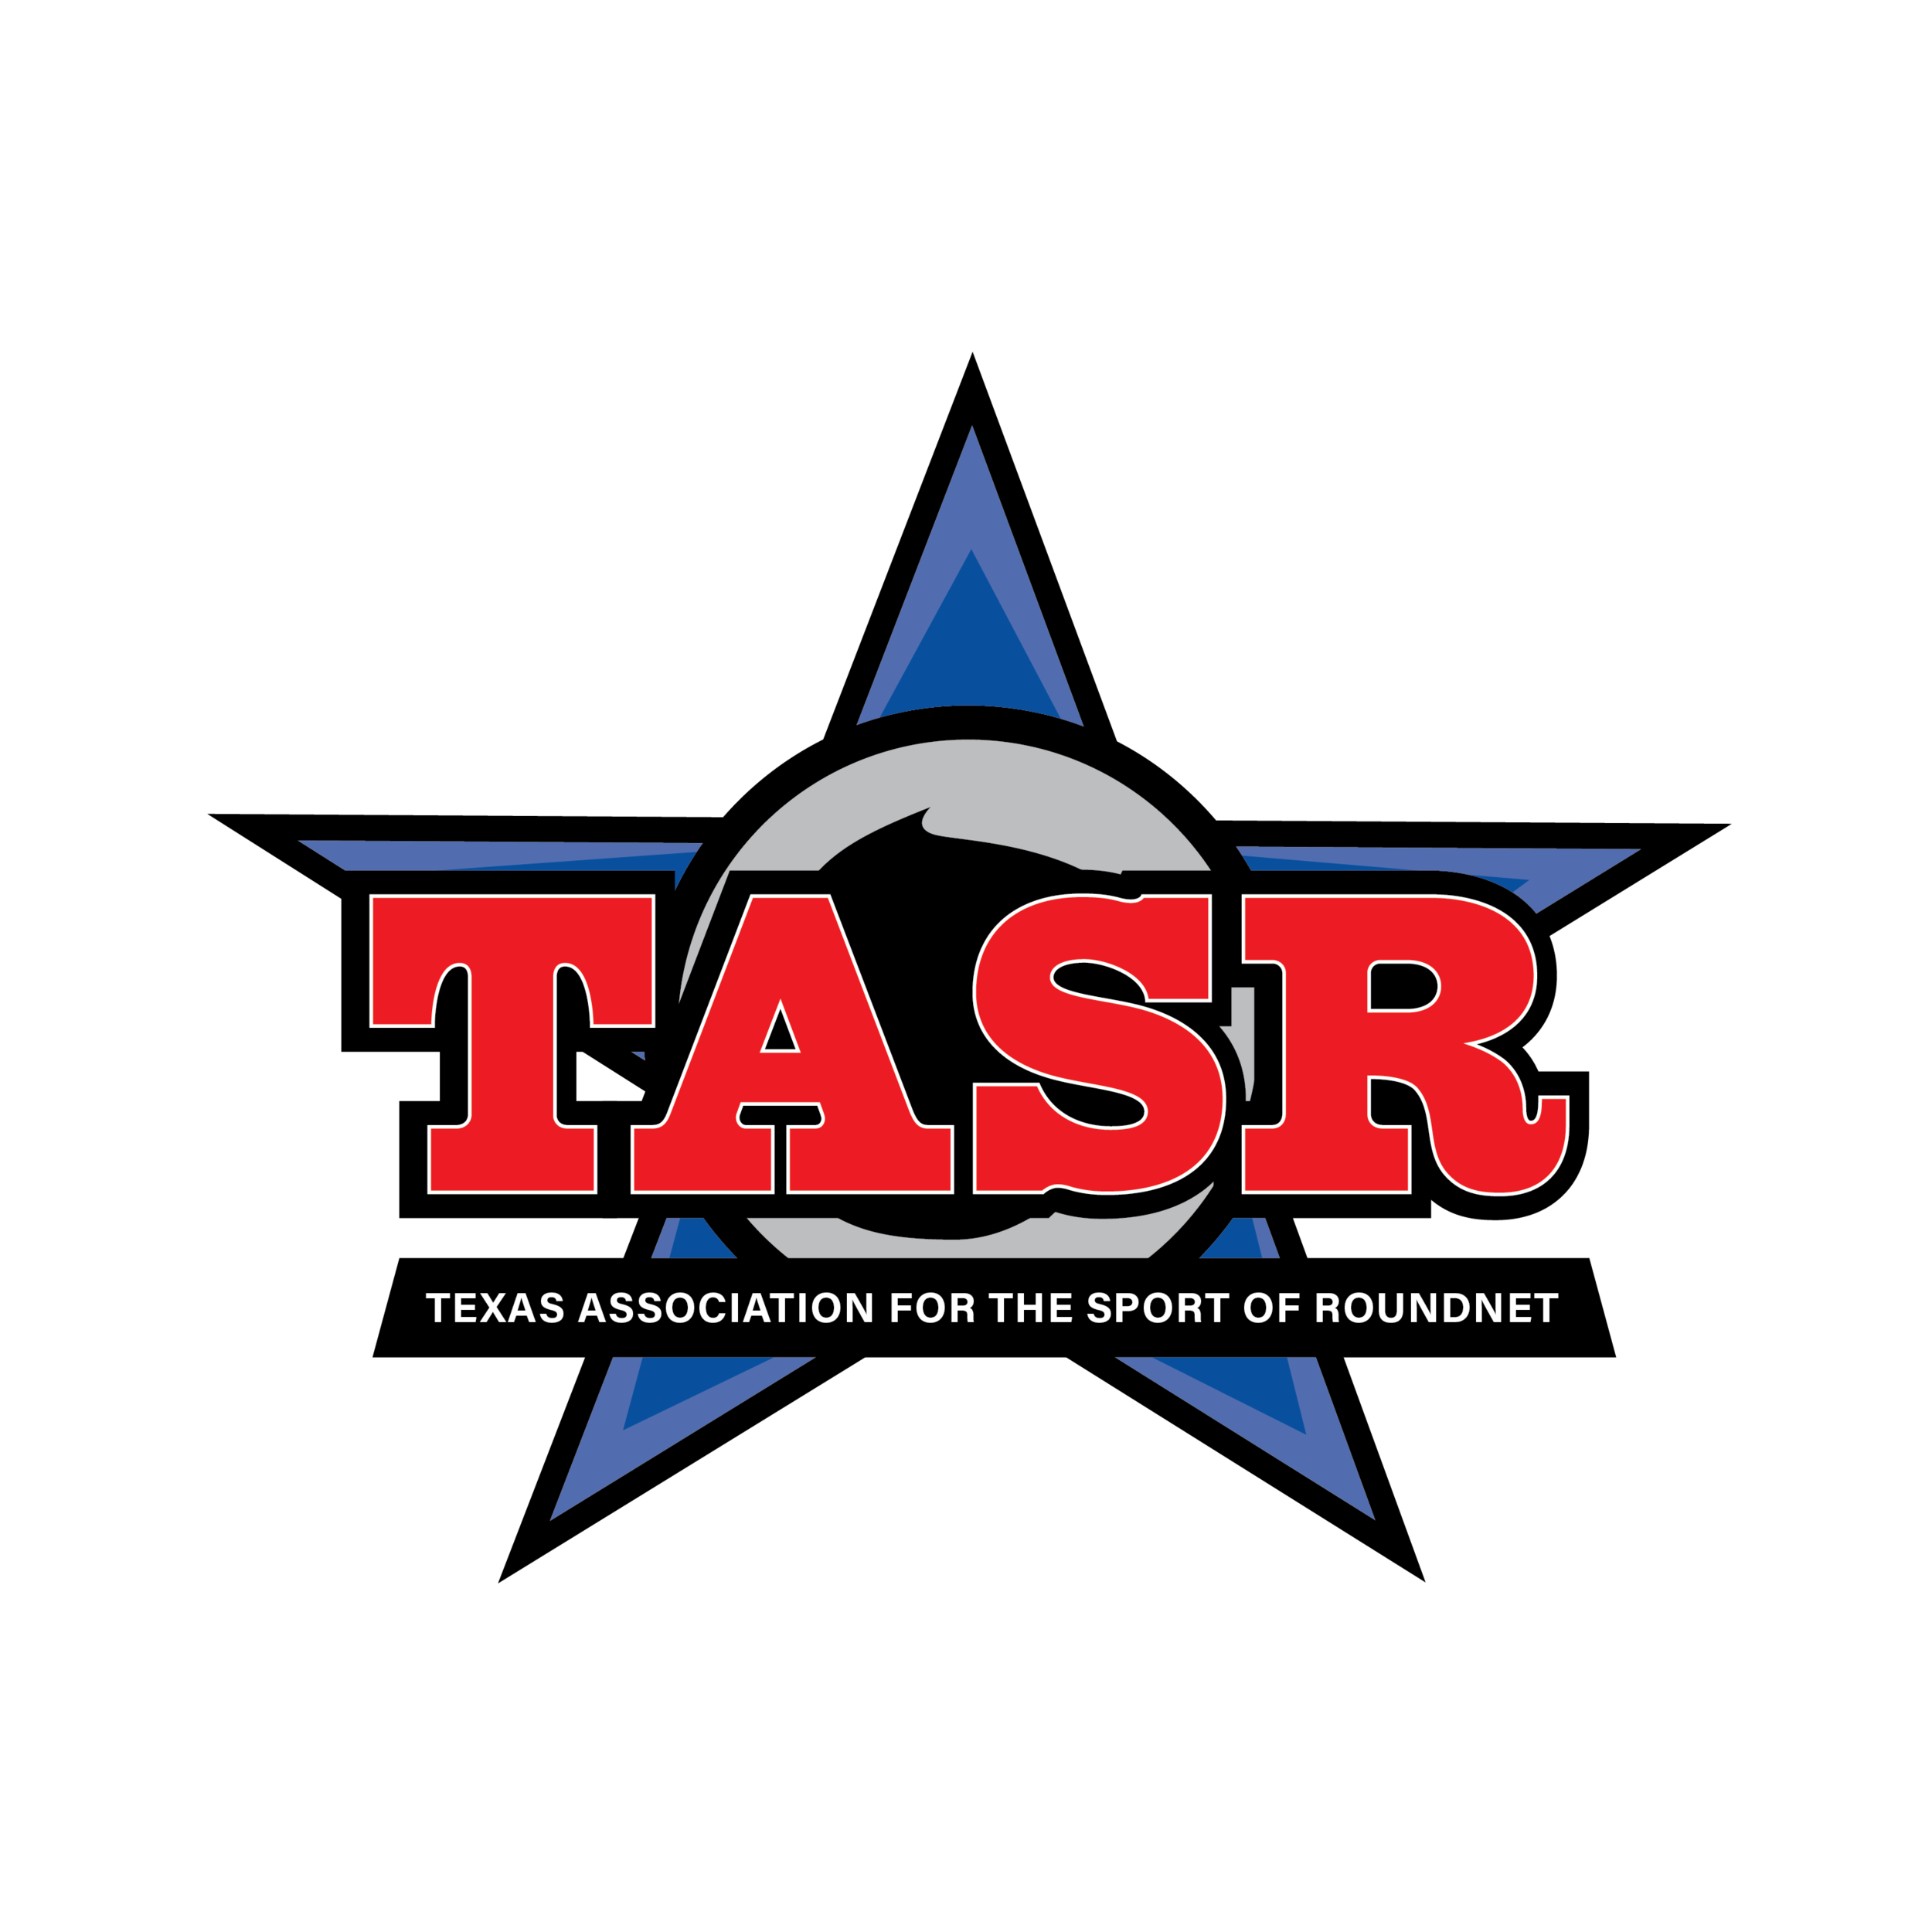 TASR Services - What we have to offer